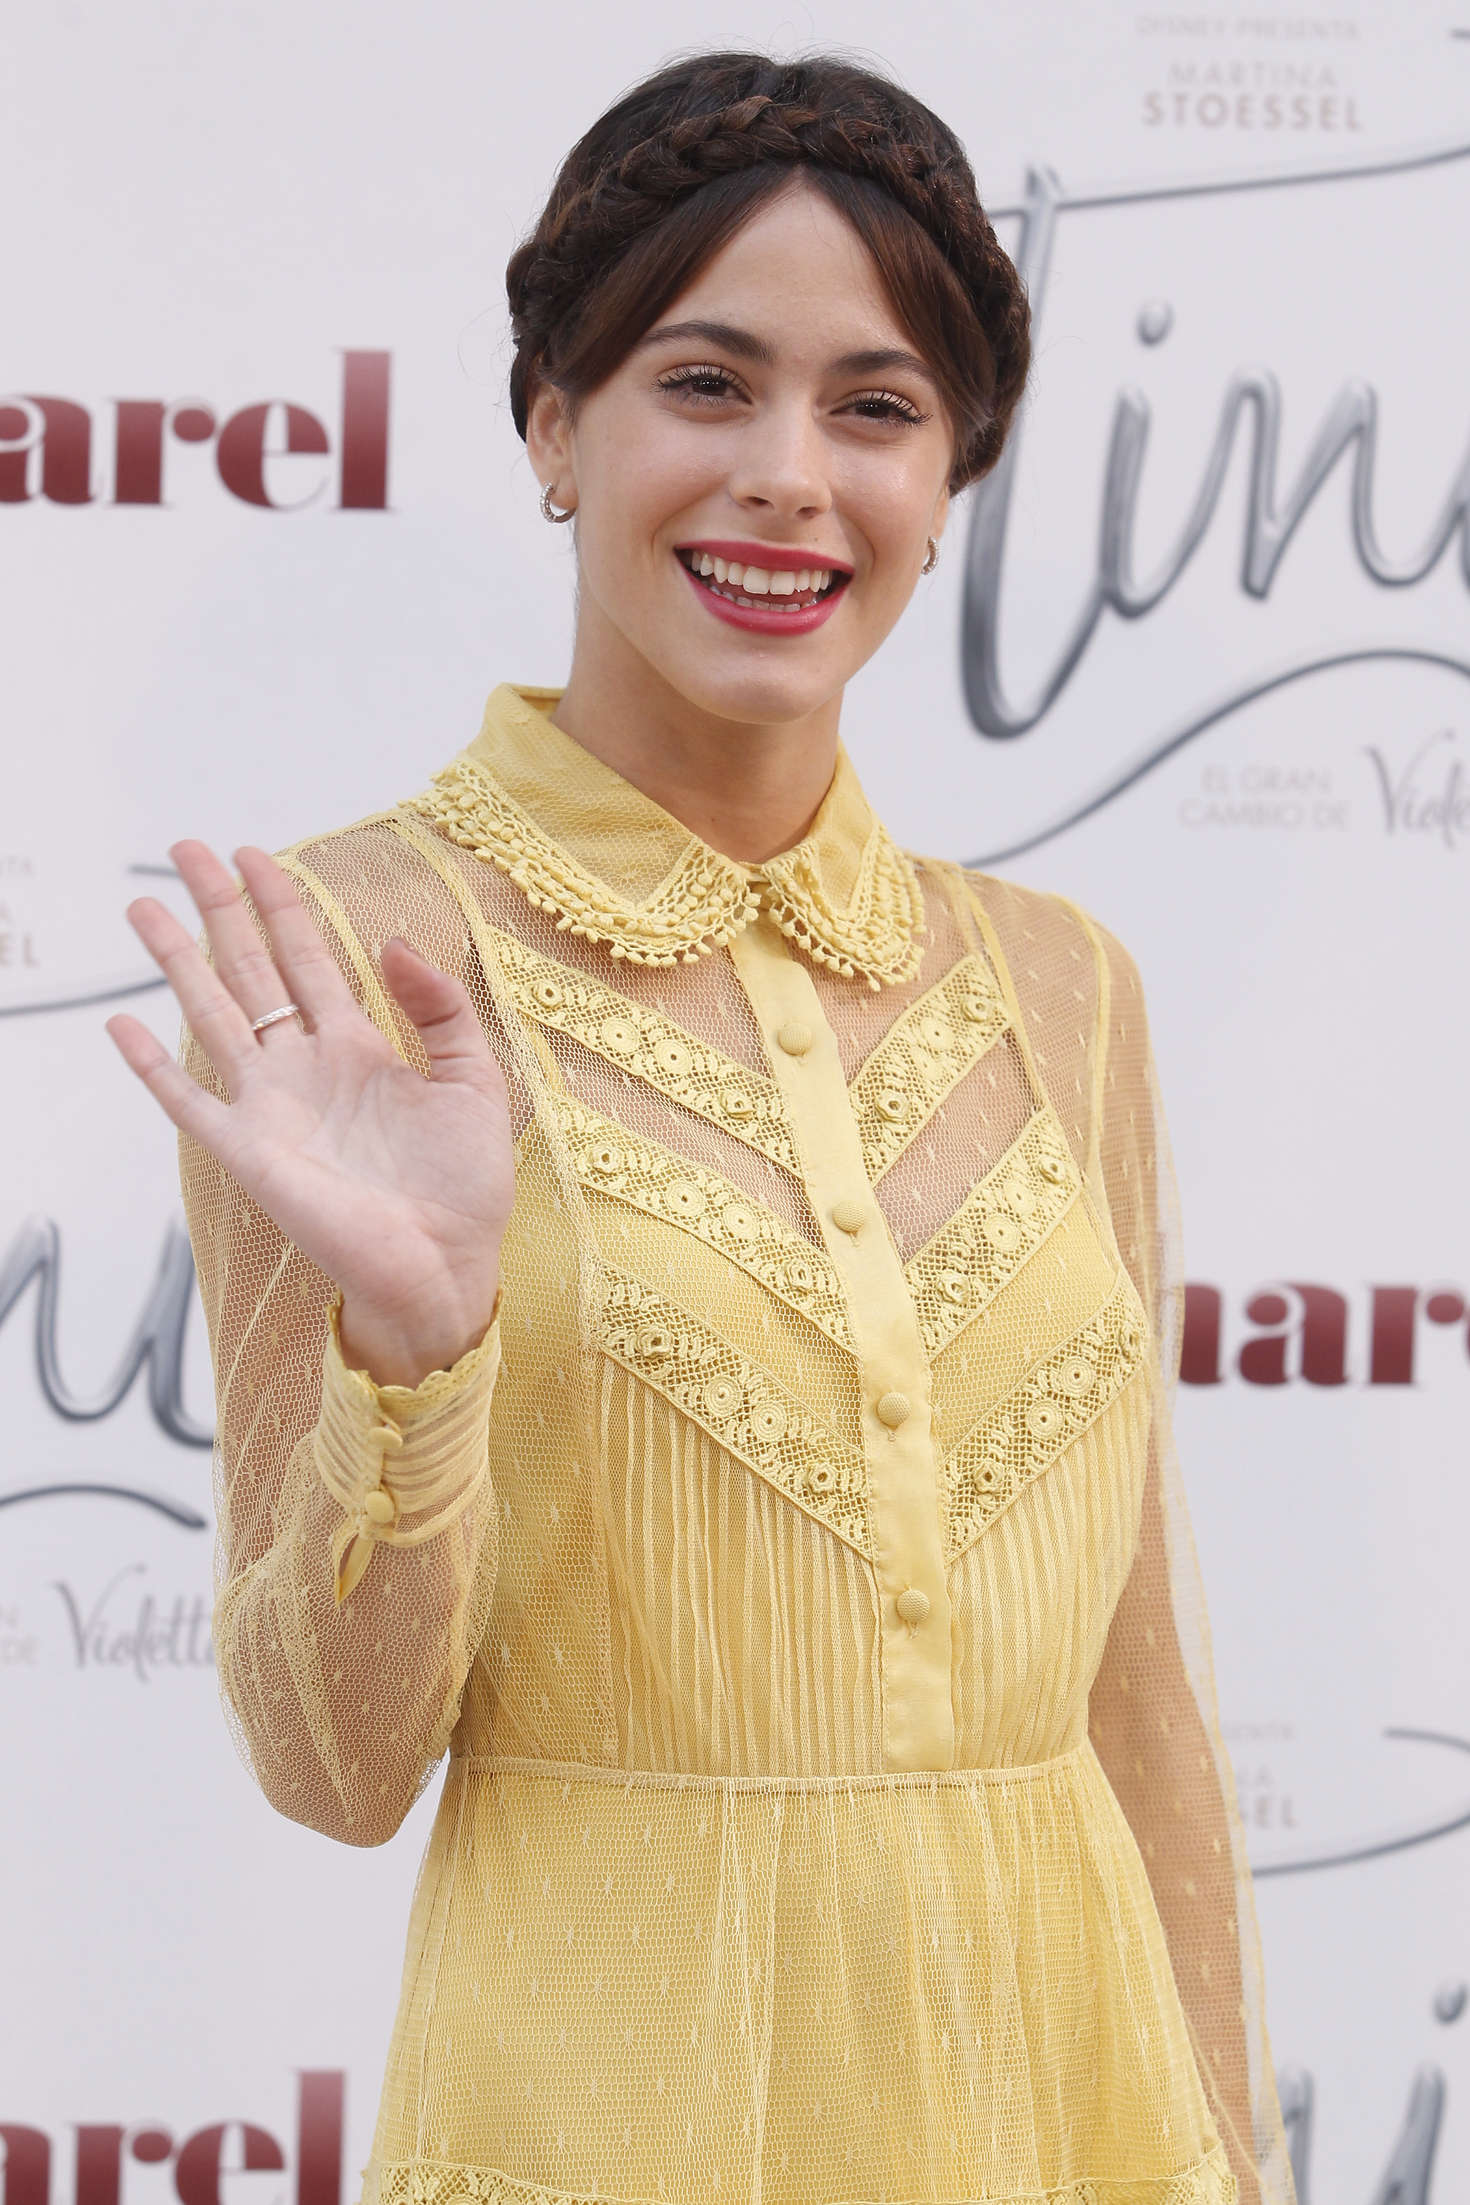 Image Result For Tini Stoessel